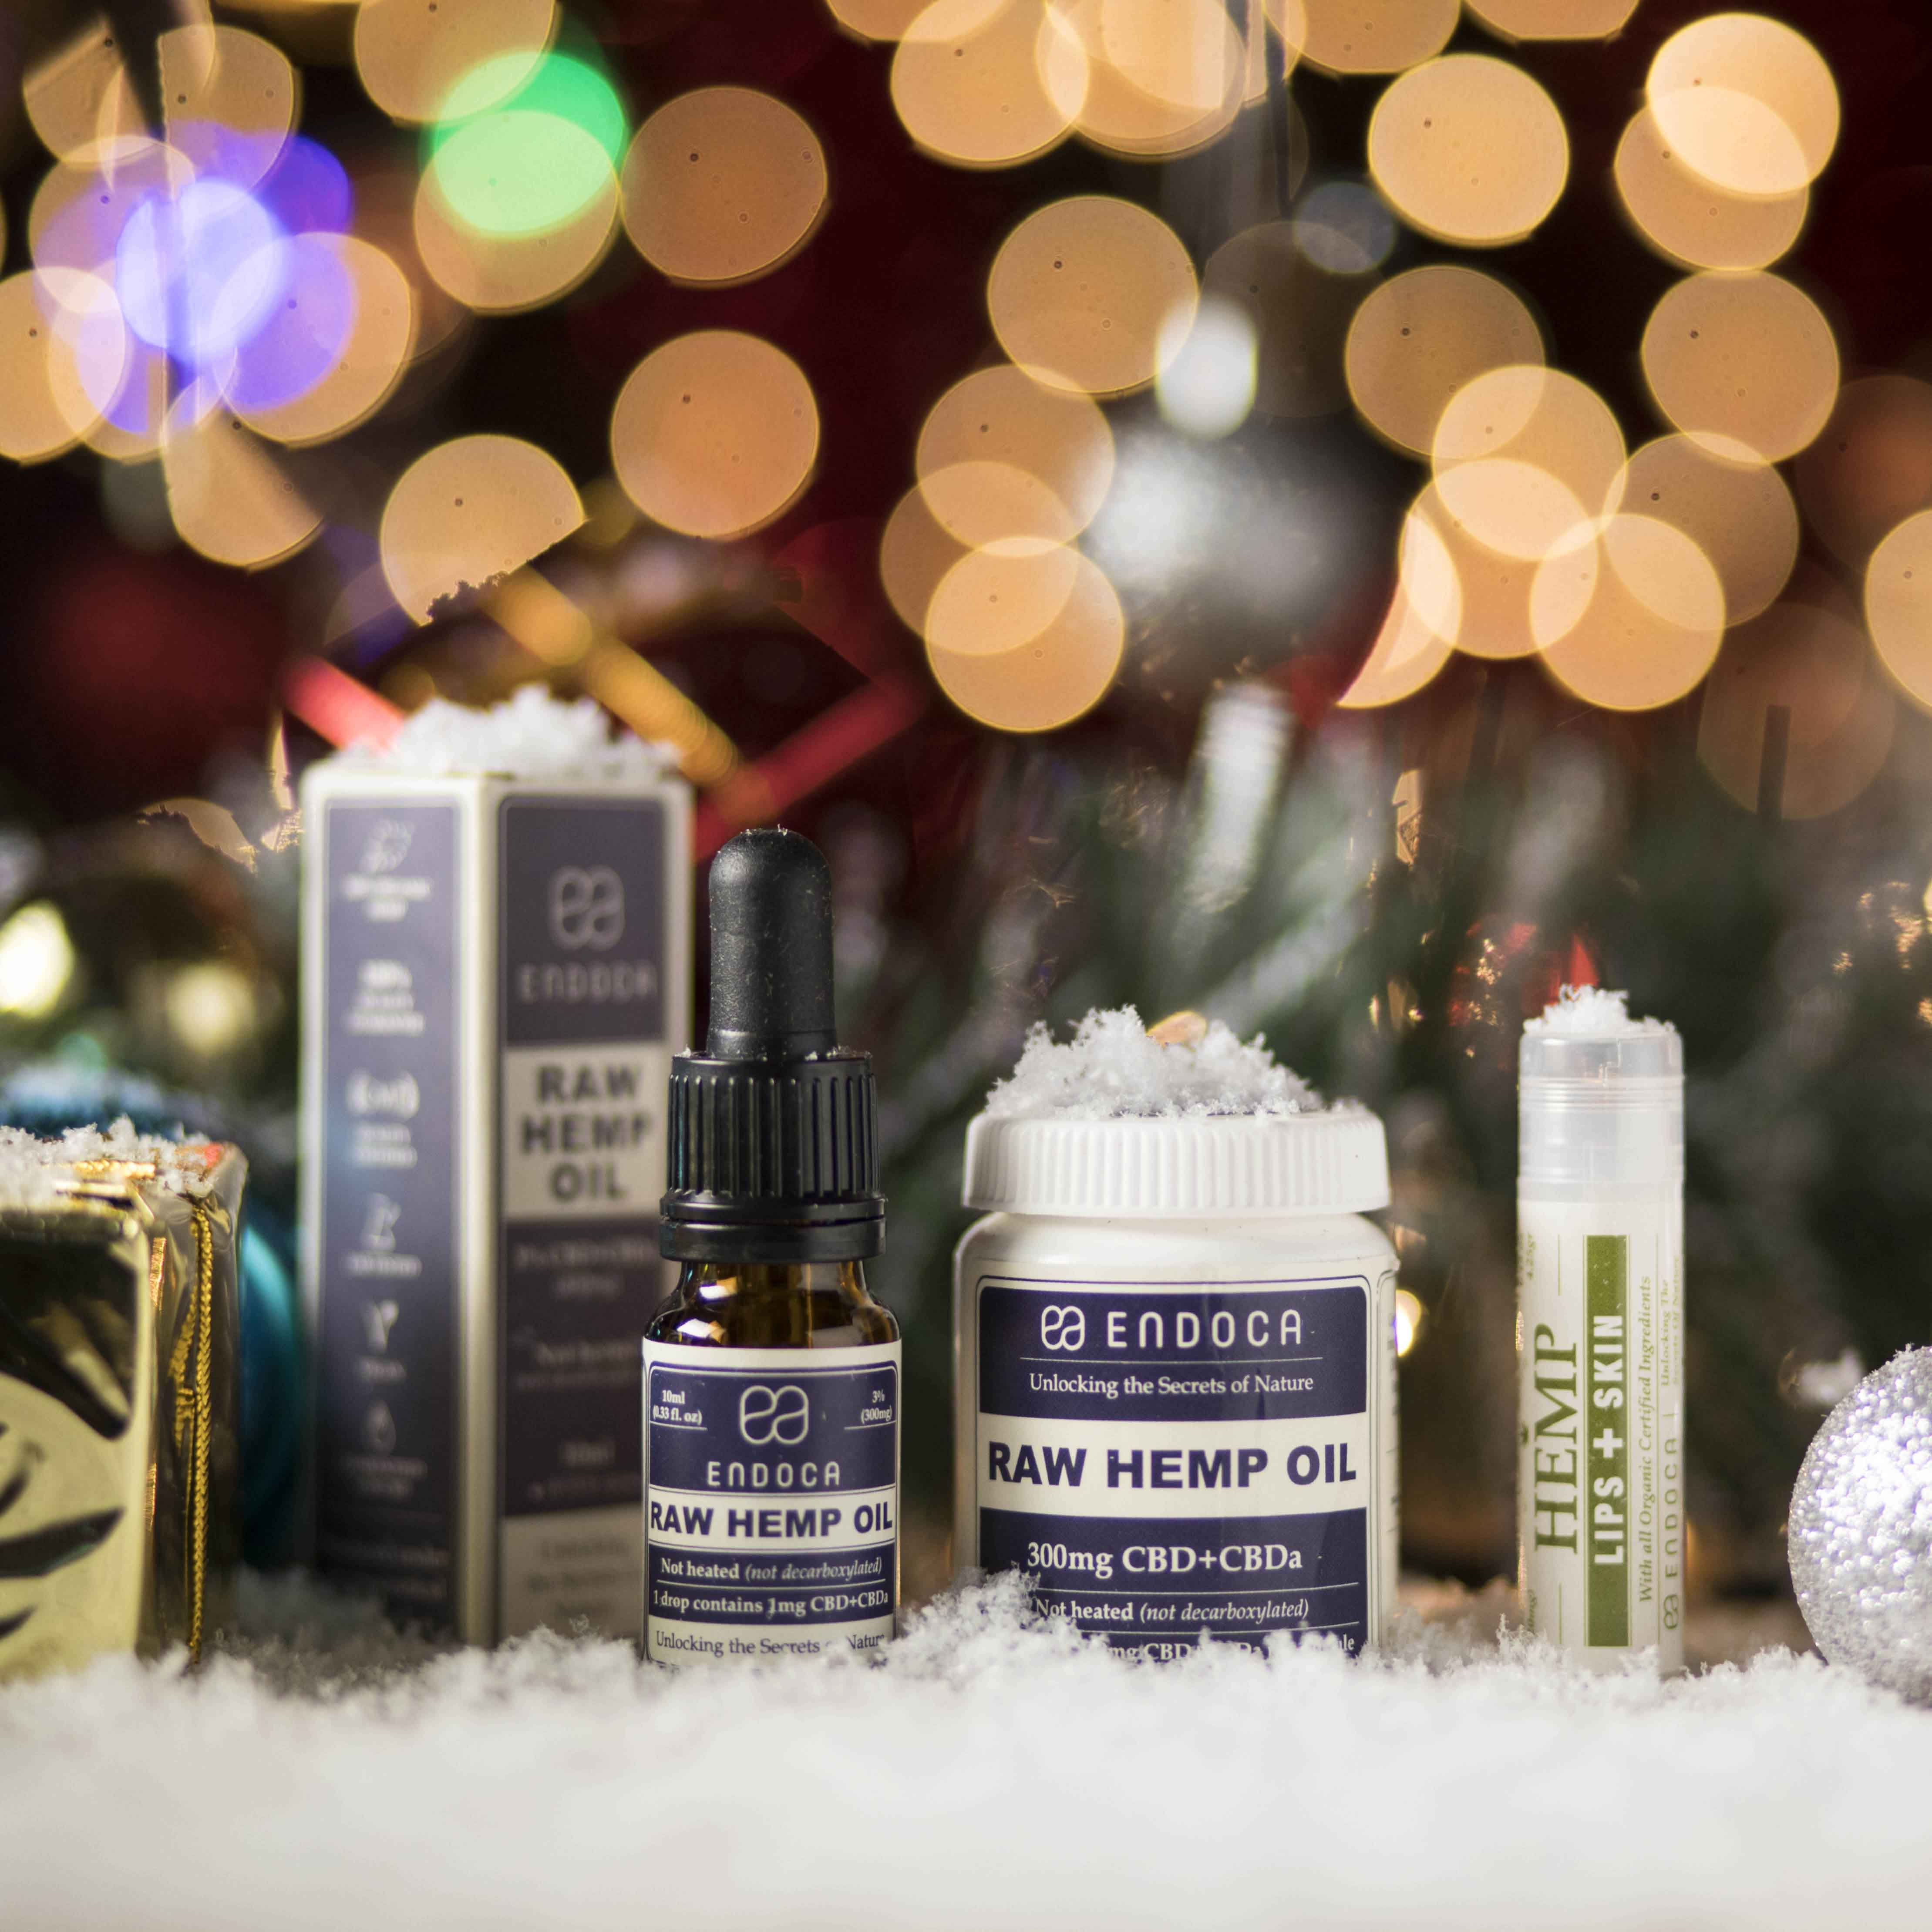 Endoca products in Christmas snow setting